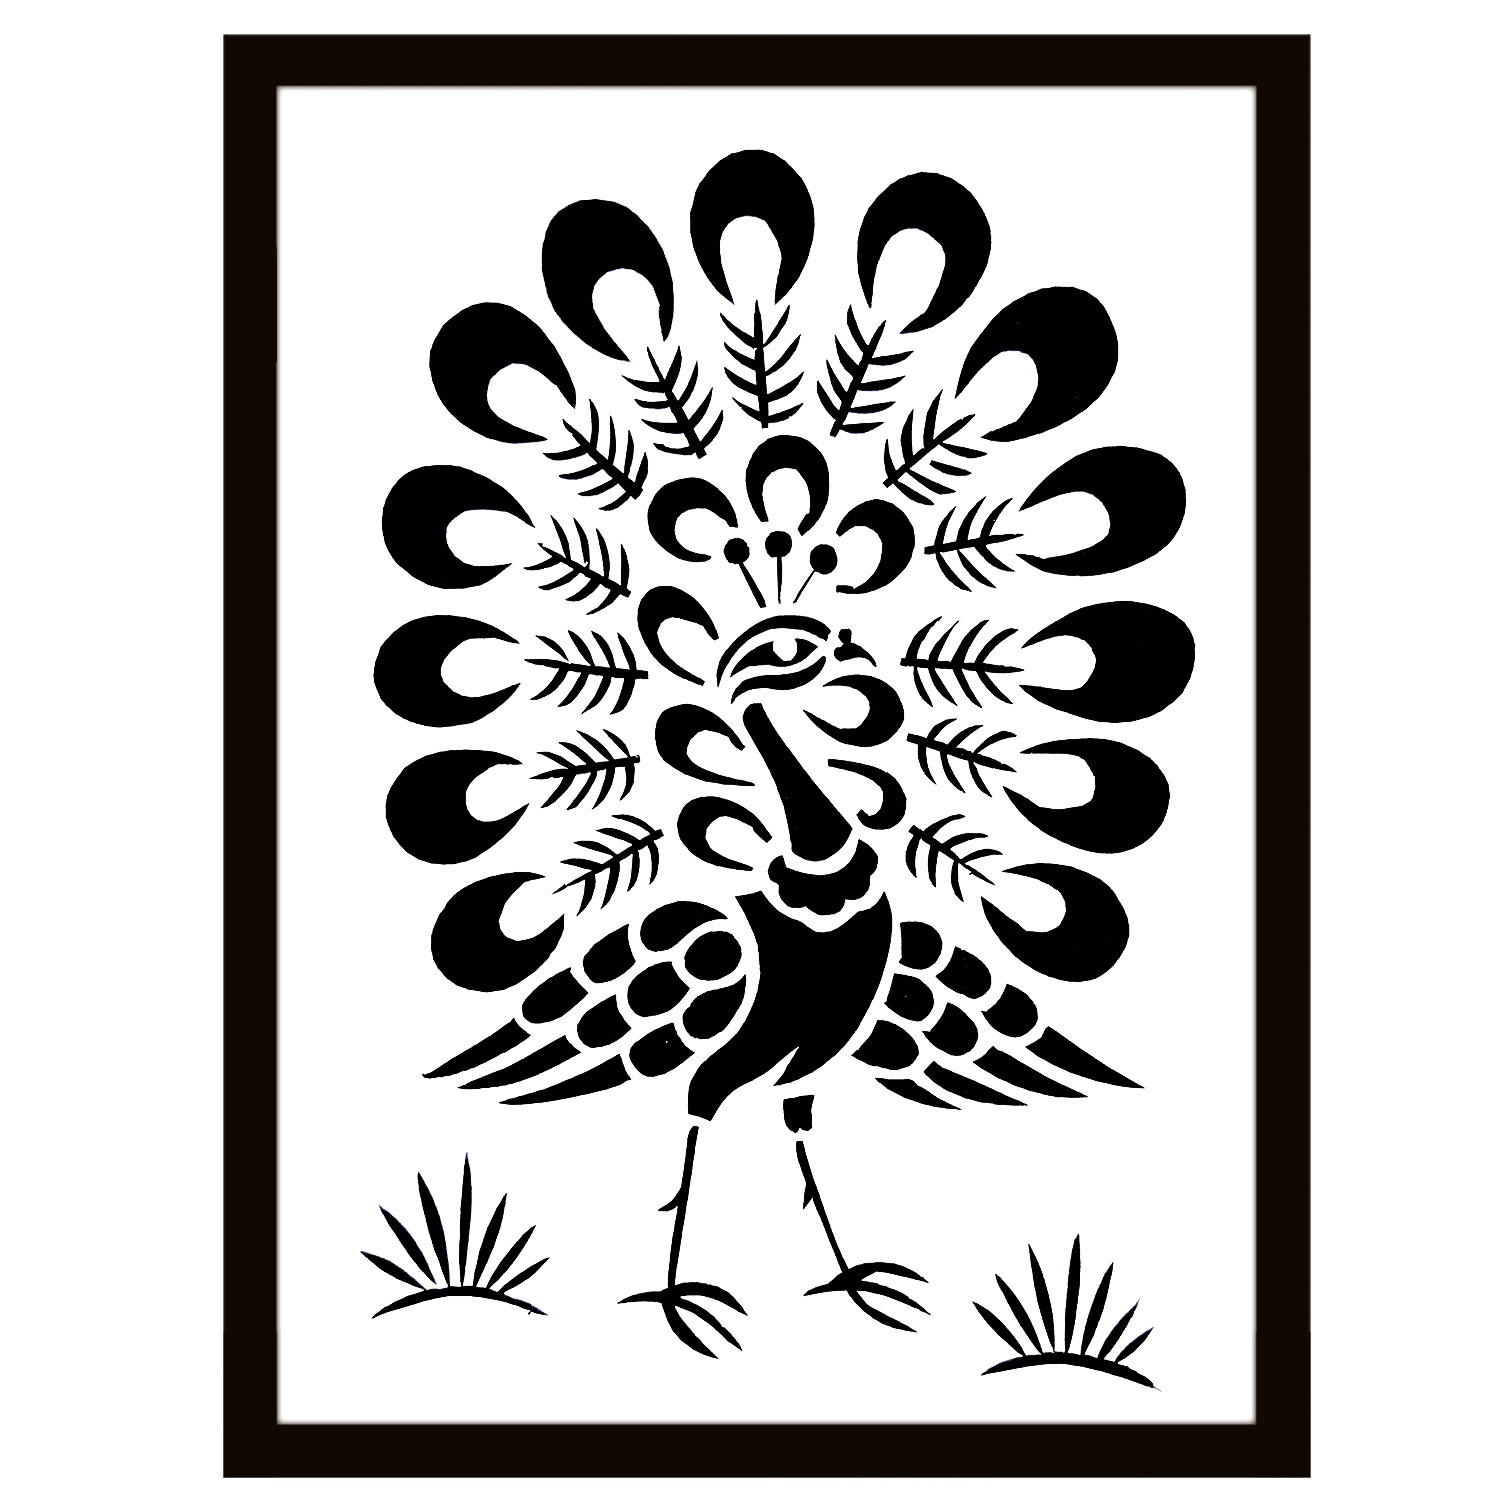 Handmade Sanjhi Art Peacock Design By Rural Artisans.